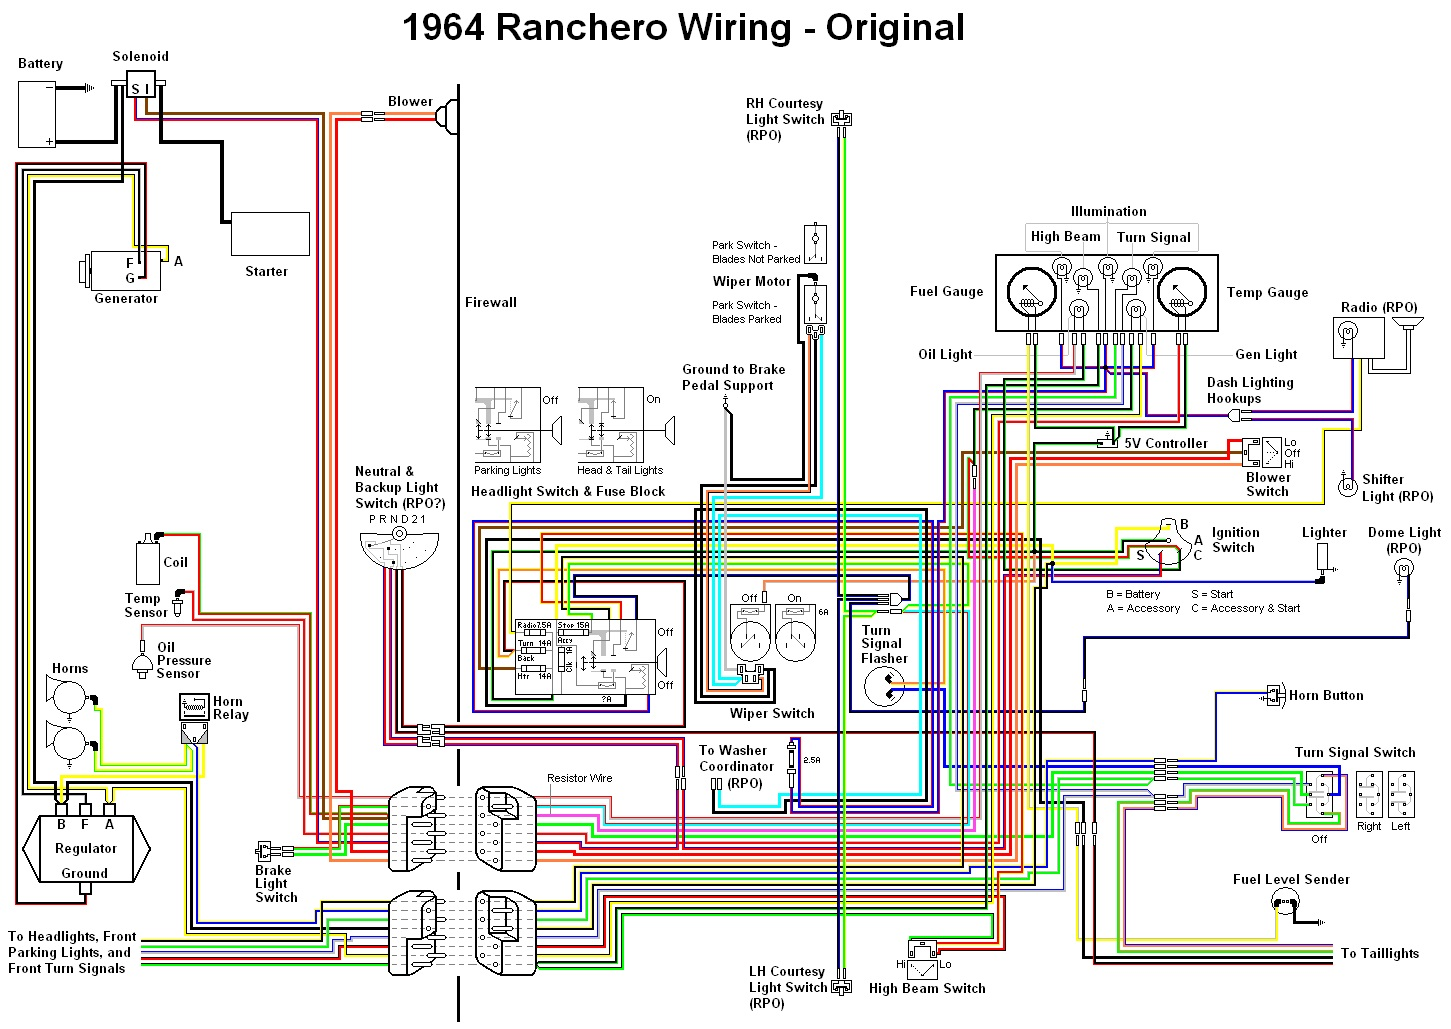 wrg 7679] 89 camaro wiring harness diagram free download